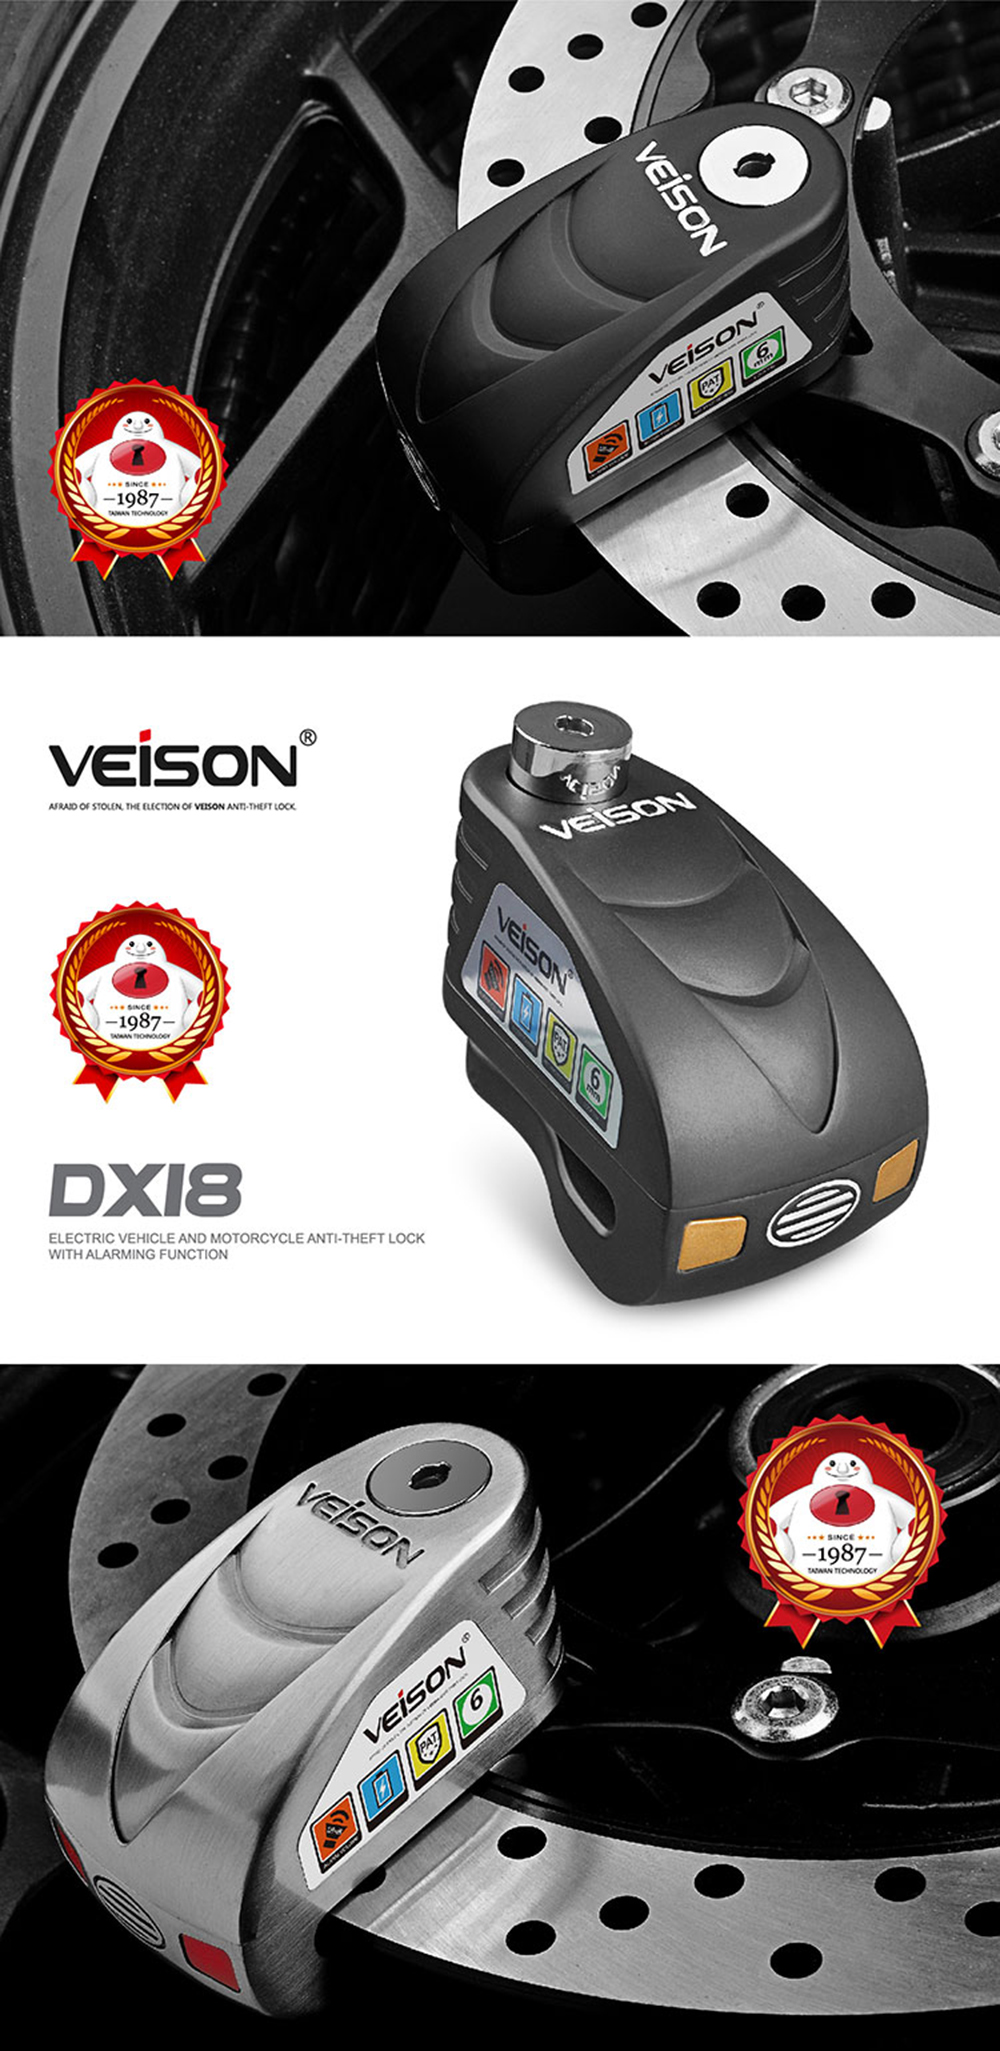 VEISON 120dB Waterproof Anti-Theft Alarm Brake Disc Electric Padlock Bike for Scooters